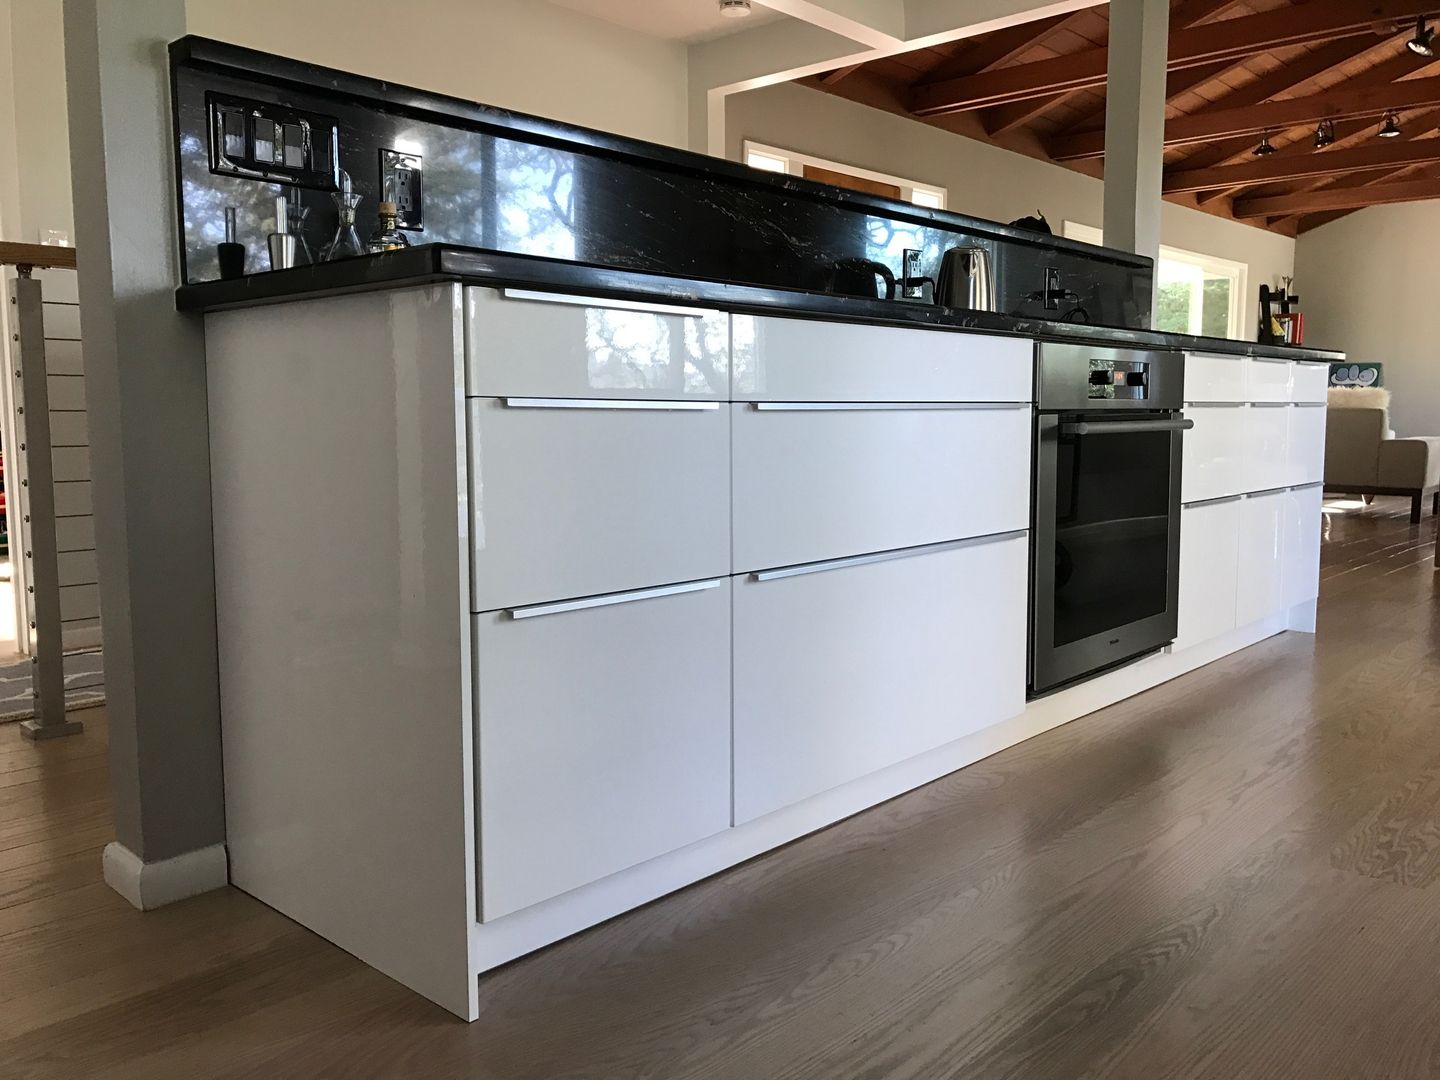 Cucina Ikea Tingsryd Jarsta Finished And Completed Ikea Kitchen Sektion Cabinets Ringhult